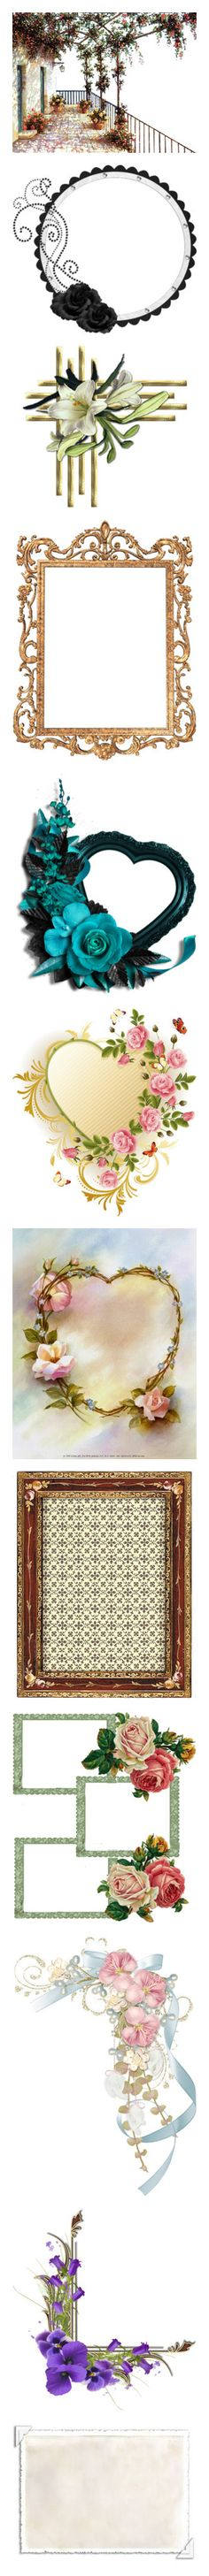 """""""Beautiful Frames 🖼🖼🖼"""" by mellie2cute ❤ liked on Polyvore featuring backgrounds, balcony, art, buildings, landscape, frame, round, circle, borders and circular"""